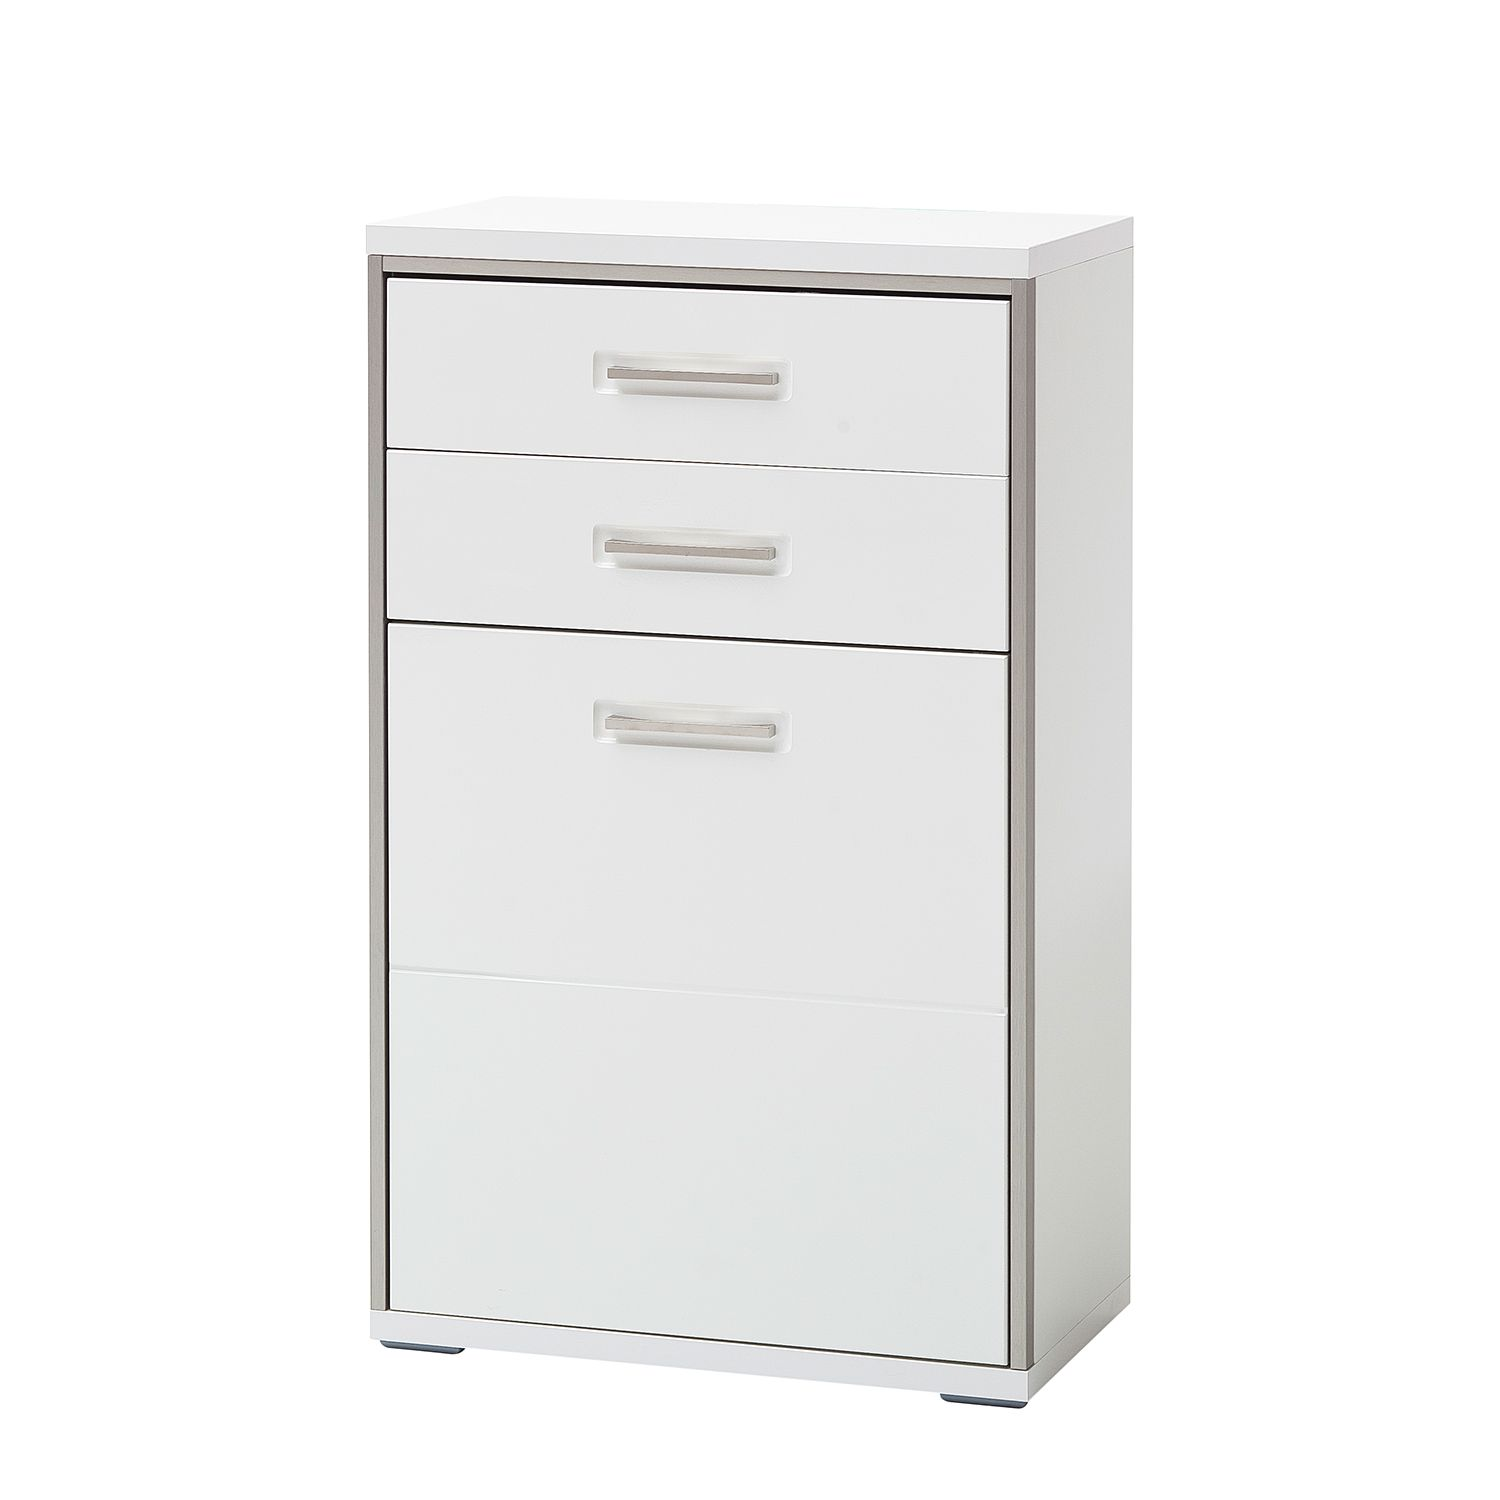 Commode Arco I - Blanc brillant, loftscape